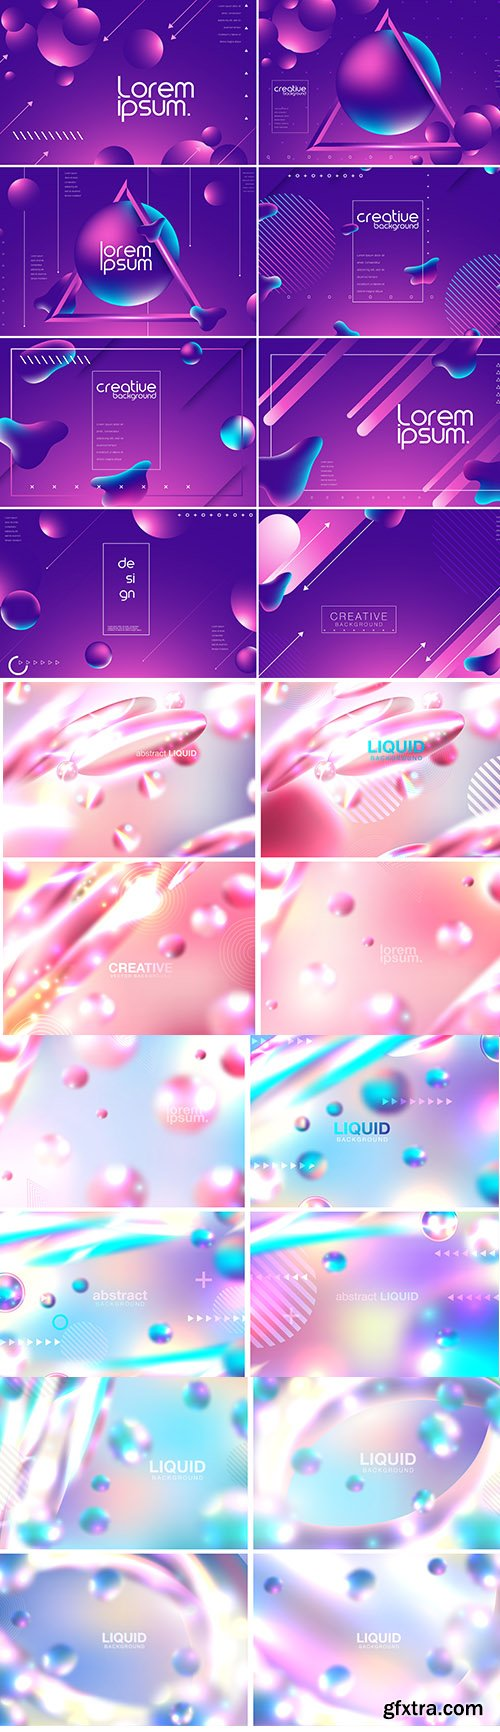 Abstract Vector Background with Liquid Bubbles